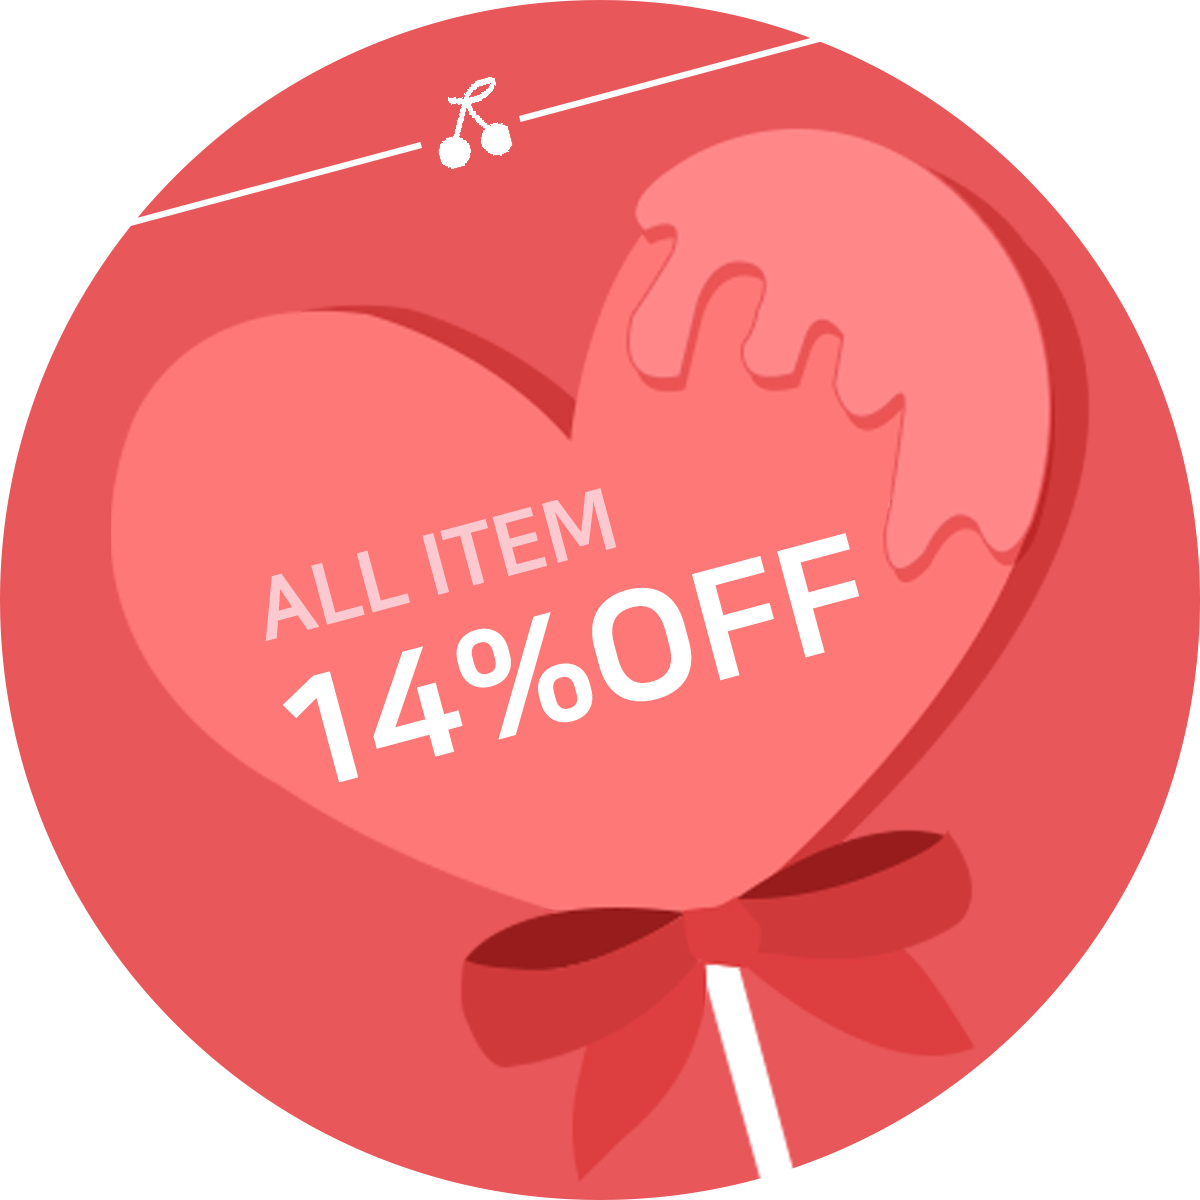 Whiteday 14% OFF Coupon